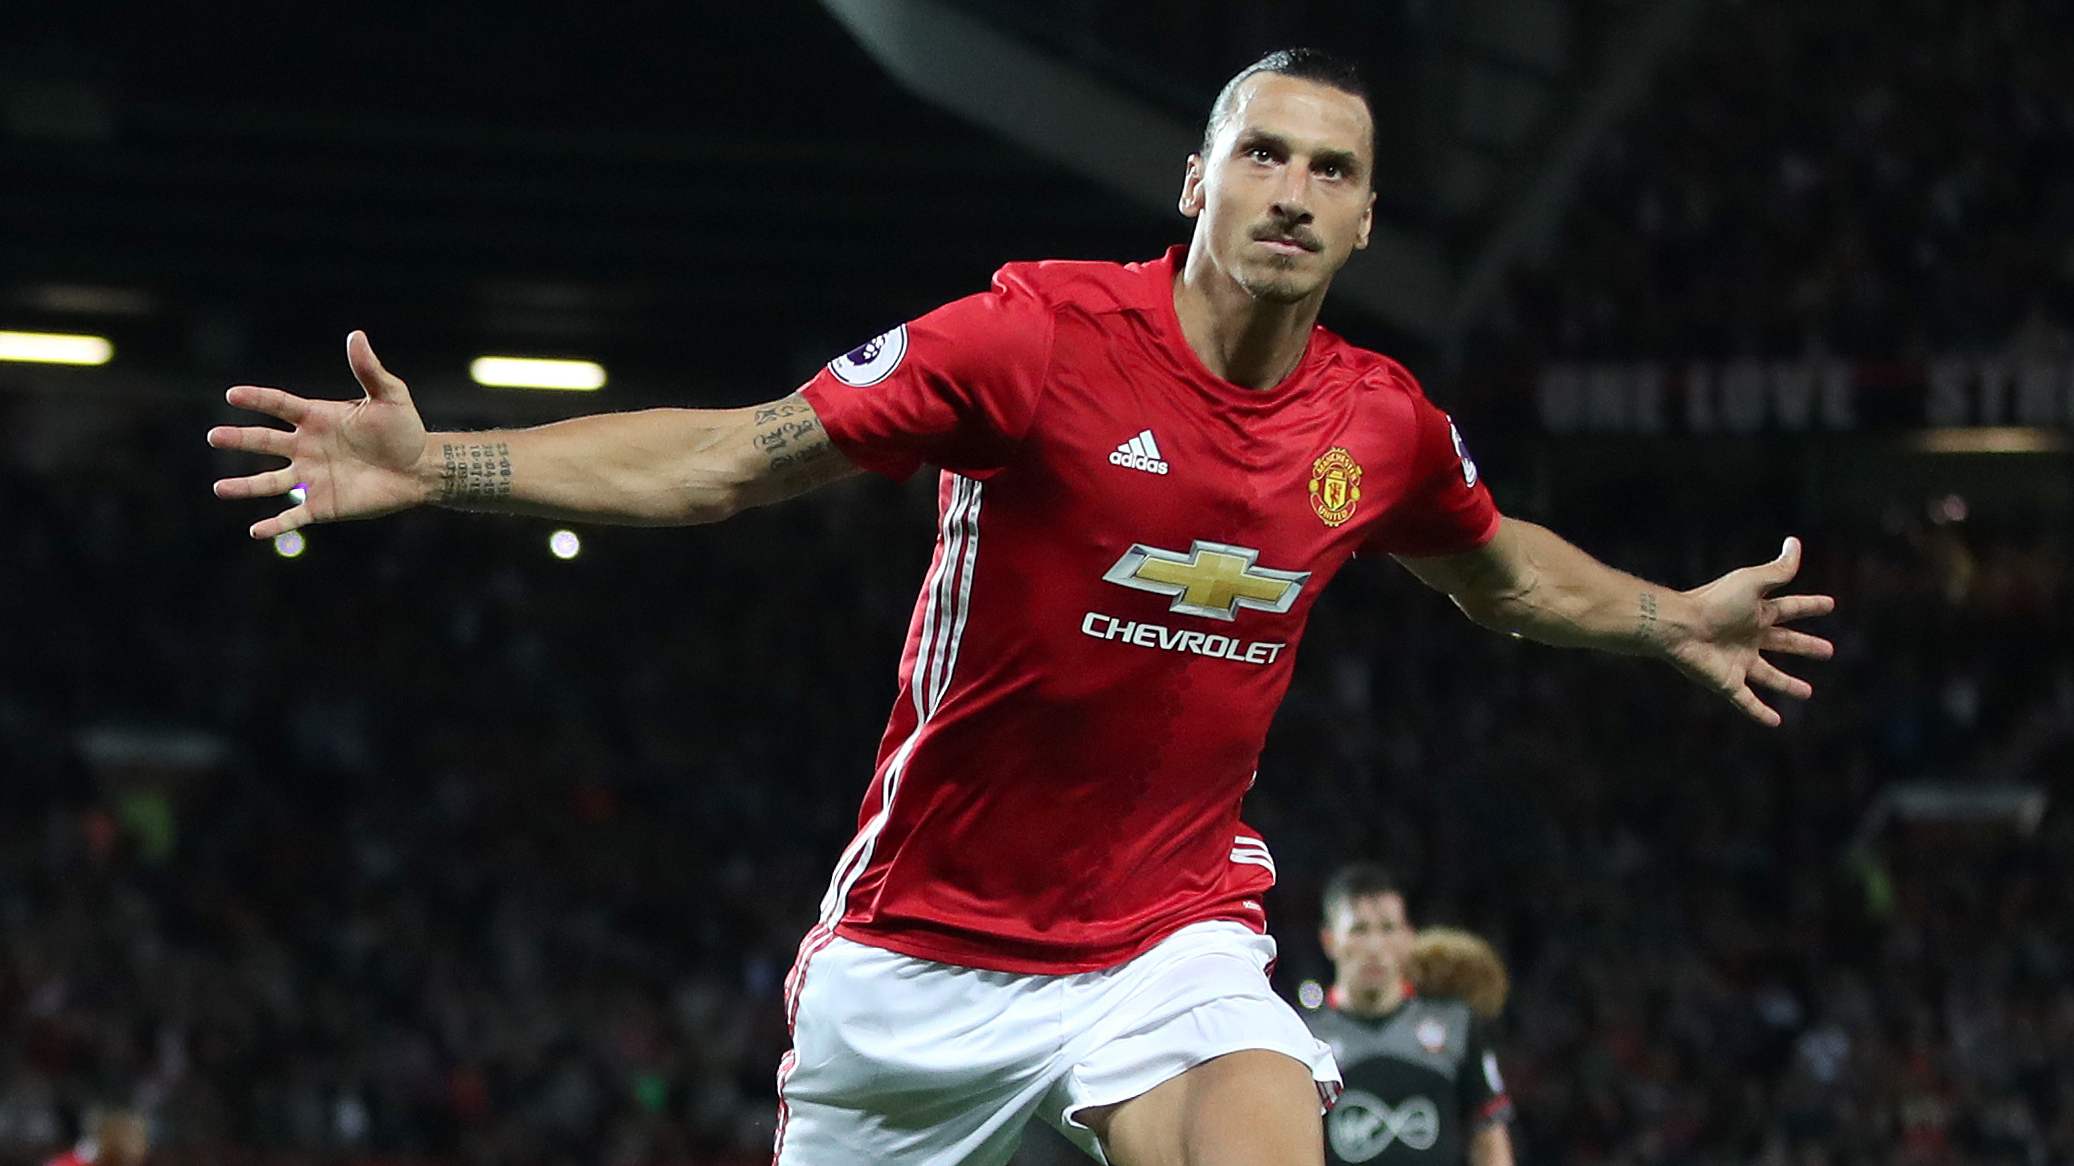 Ibrahimovic confirms LA Galaxy switch after leaving Man United